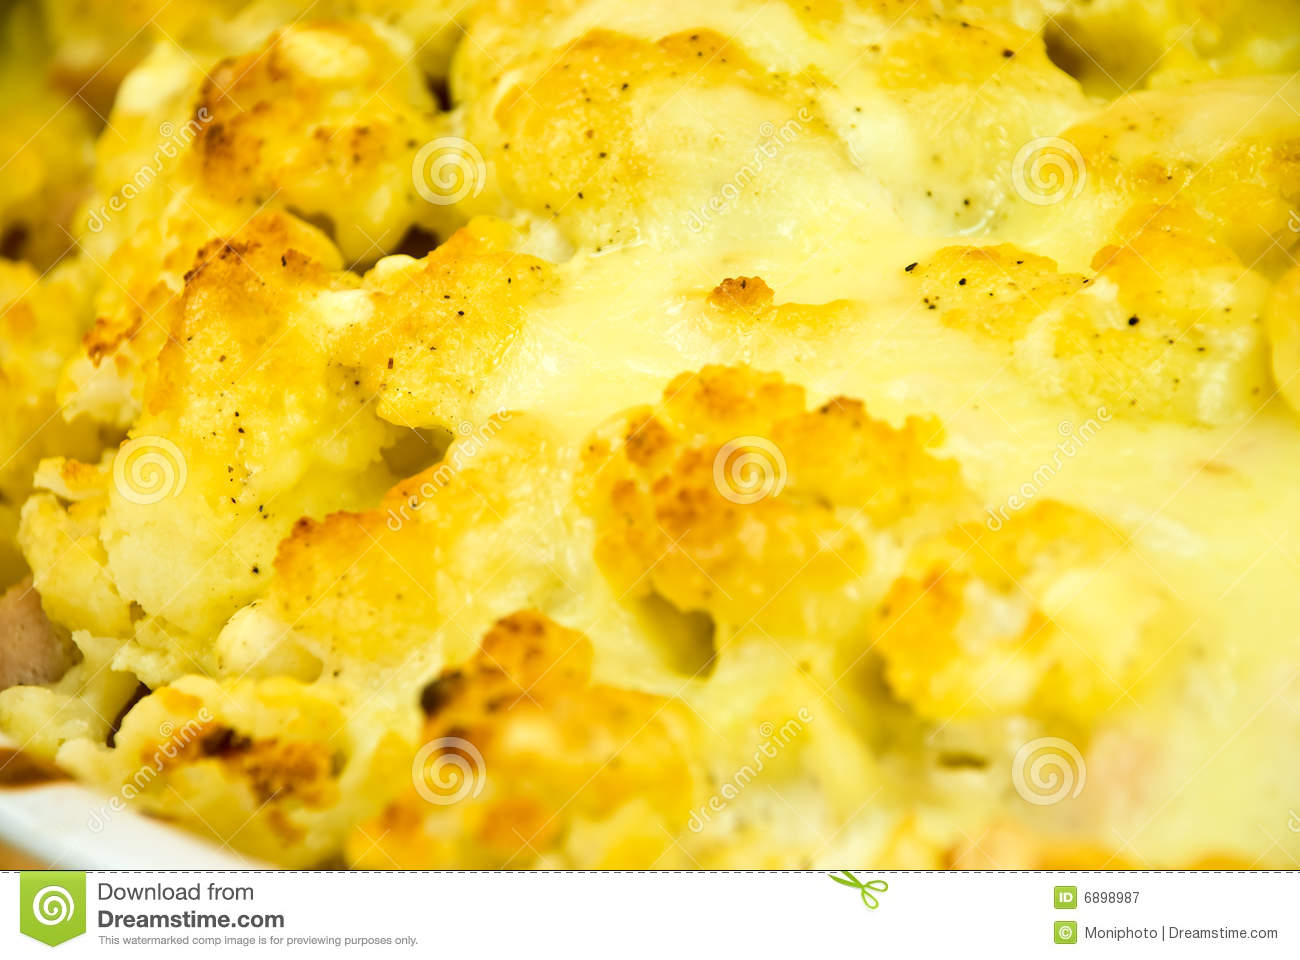 Cauliflower Au Gratin Casserole With Cheese Crus Royalty Free Stock ...